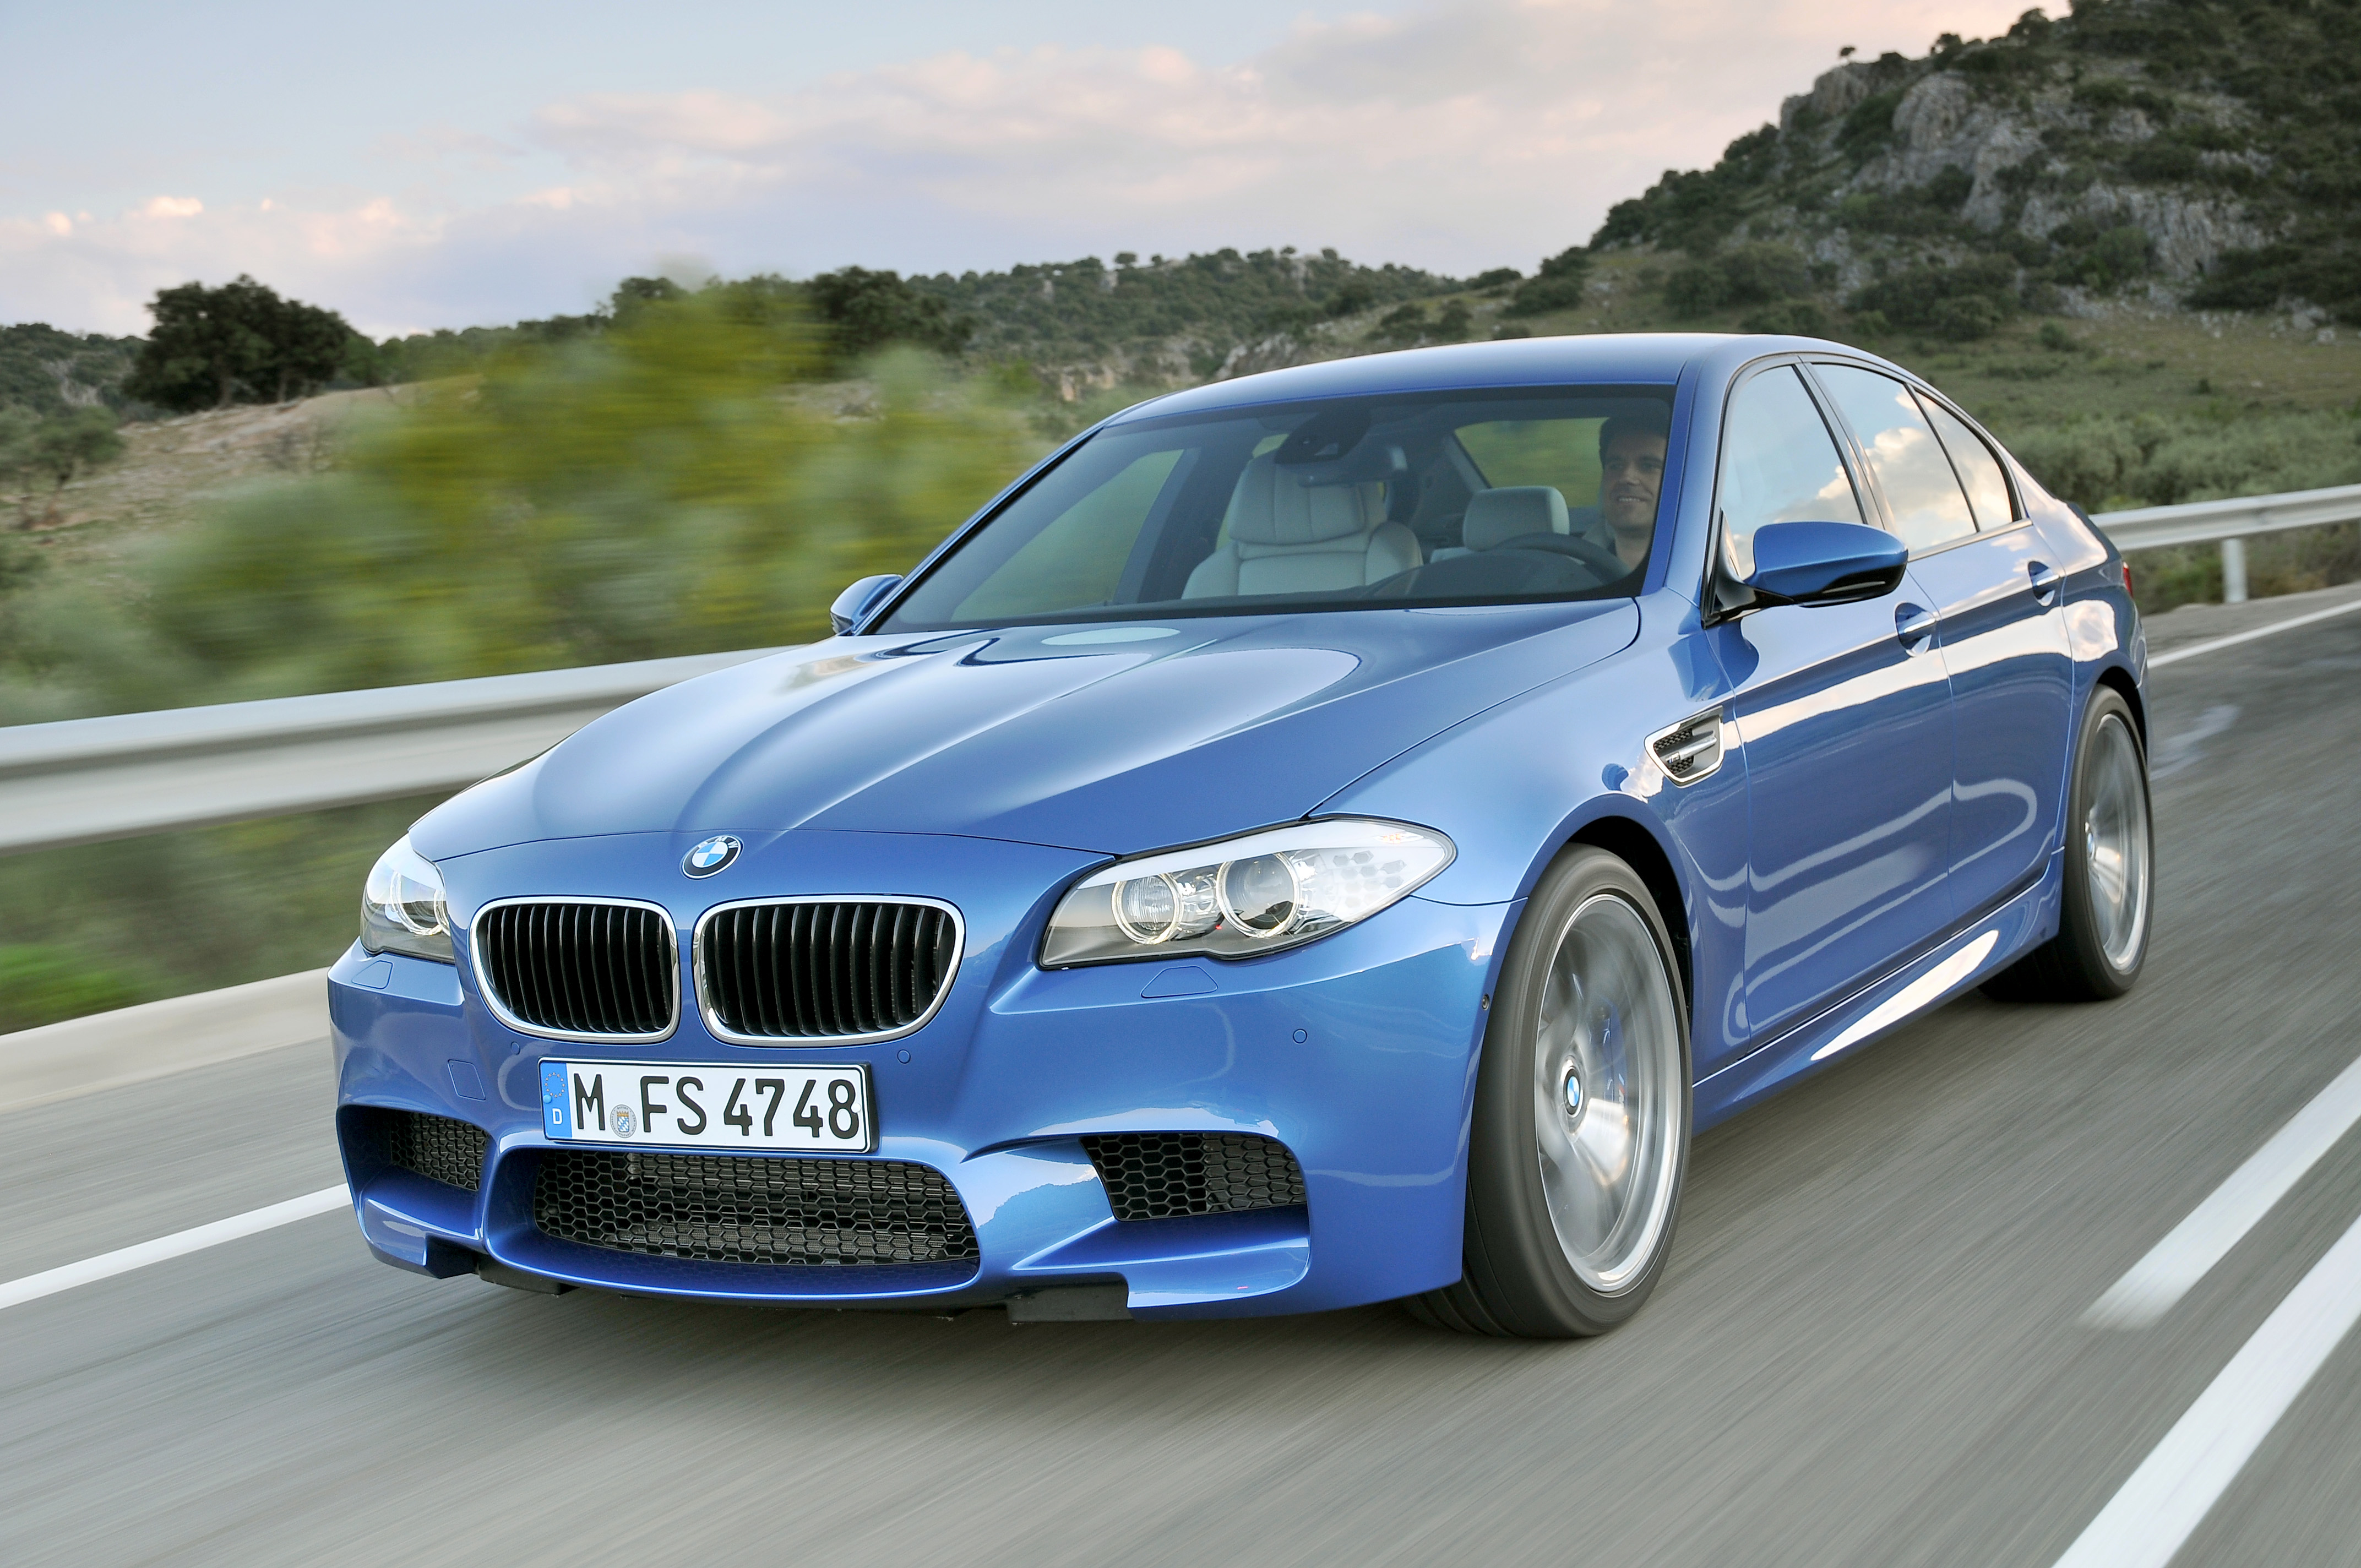 The BMW M5, in blue.